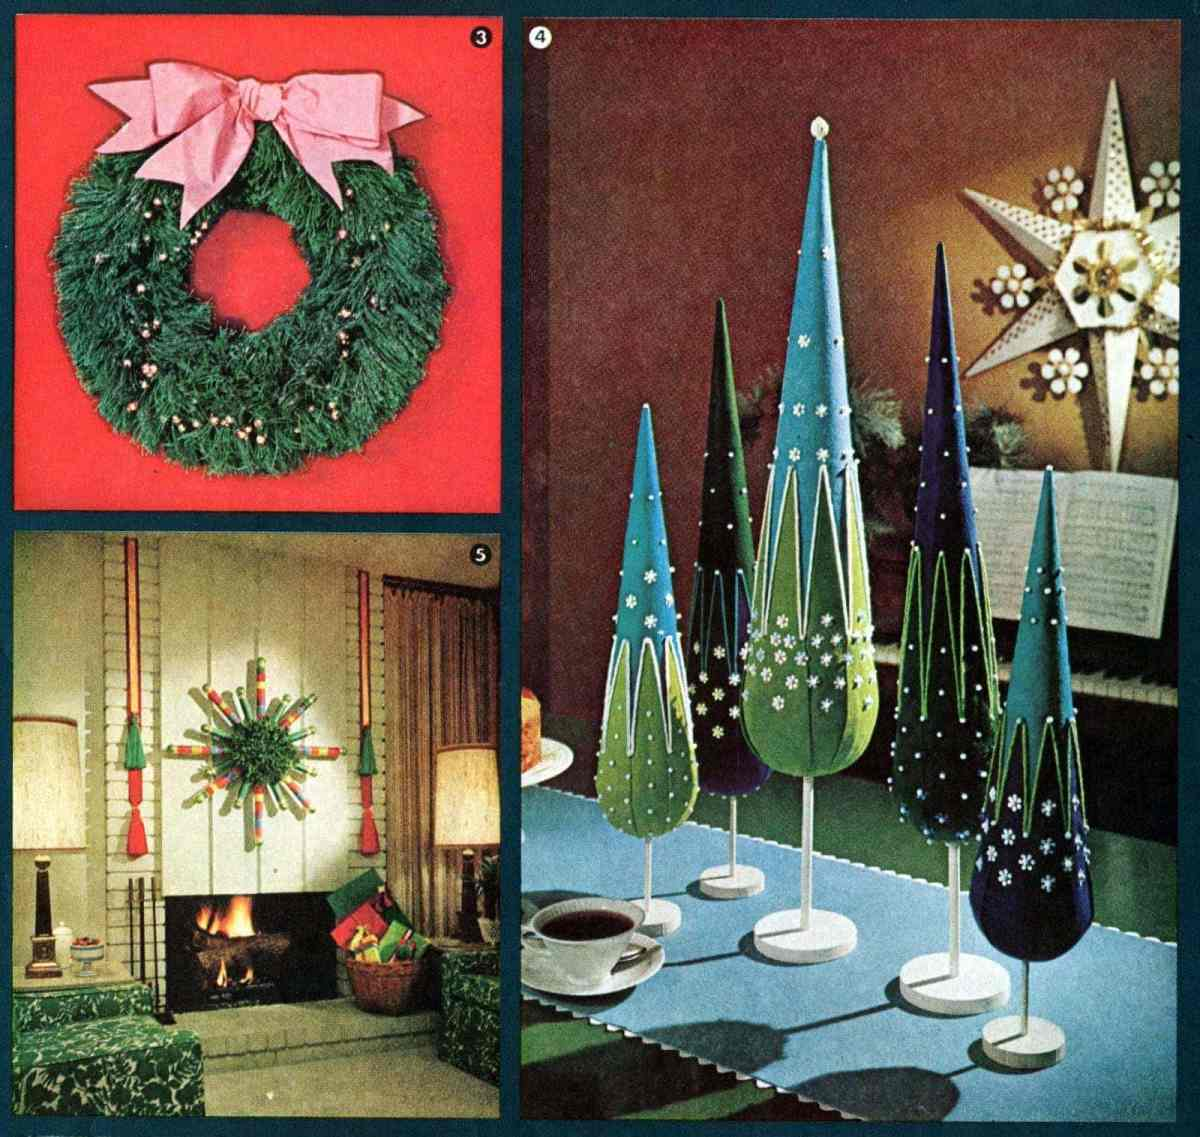 Have a crafty Christmas! Retro holiday decor you can make with ideas from the '60s